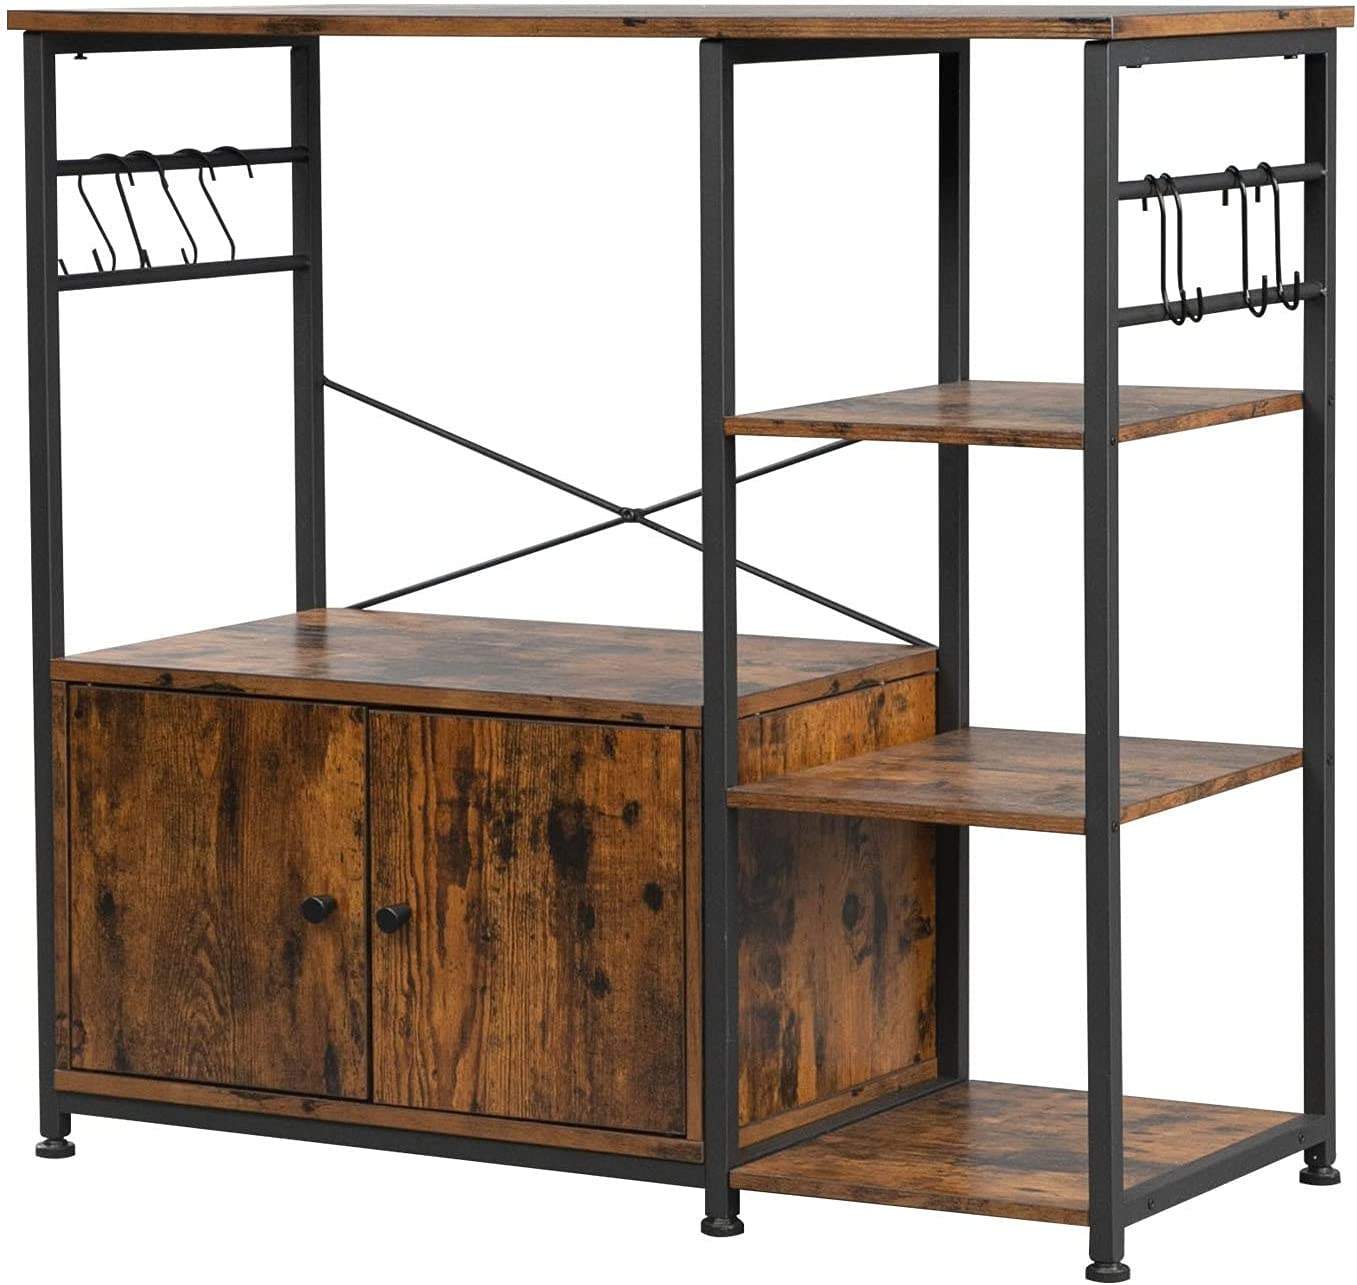 SYCBH Kitchen San Jose Mall Shelf Hodely Particleboard Wind Cheap sale Industrial 4-Layer